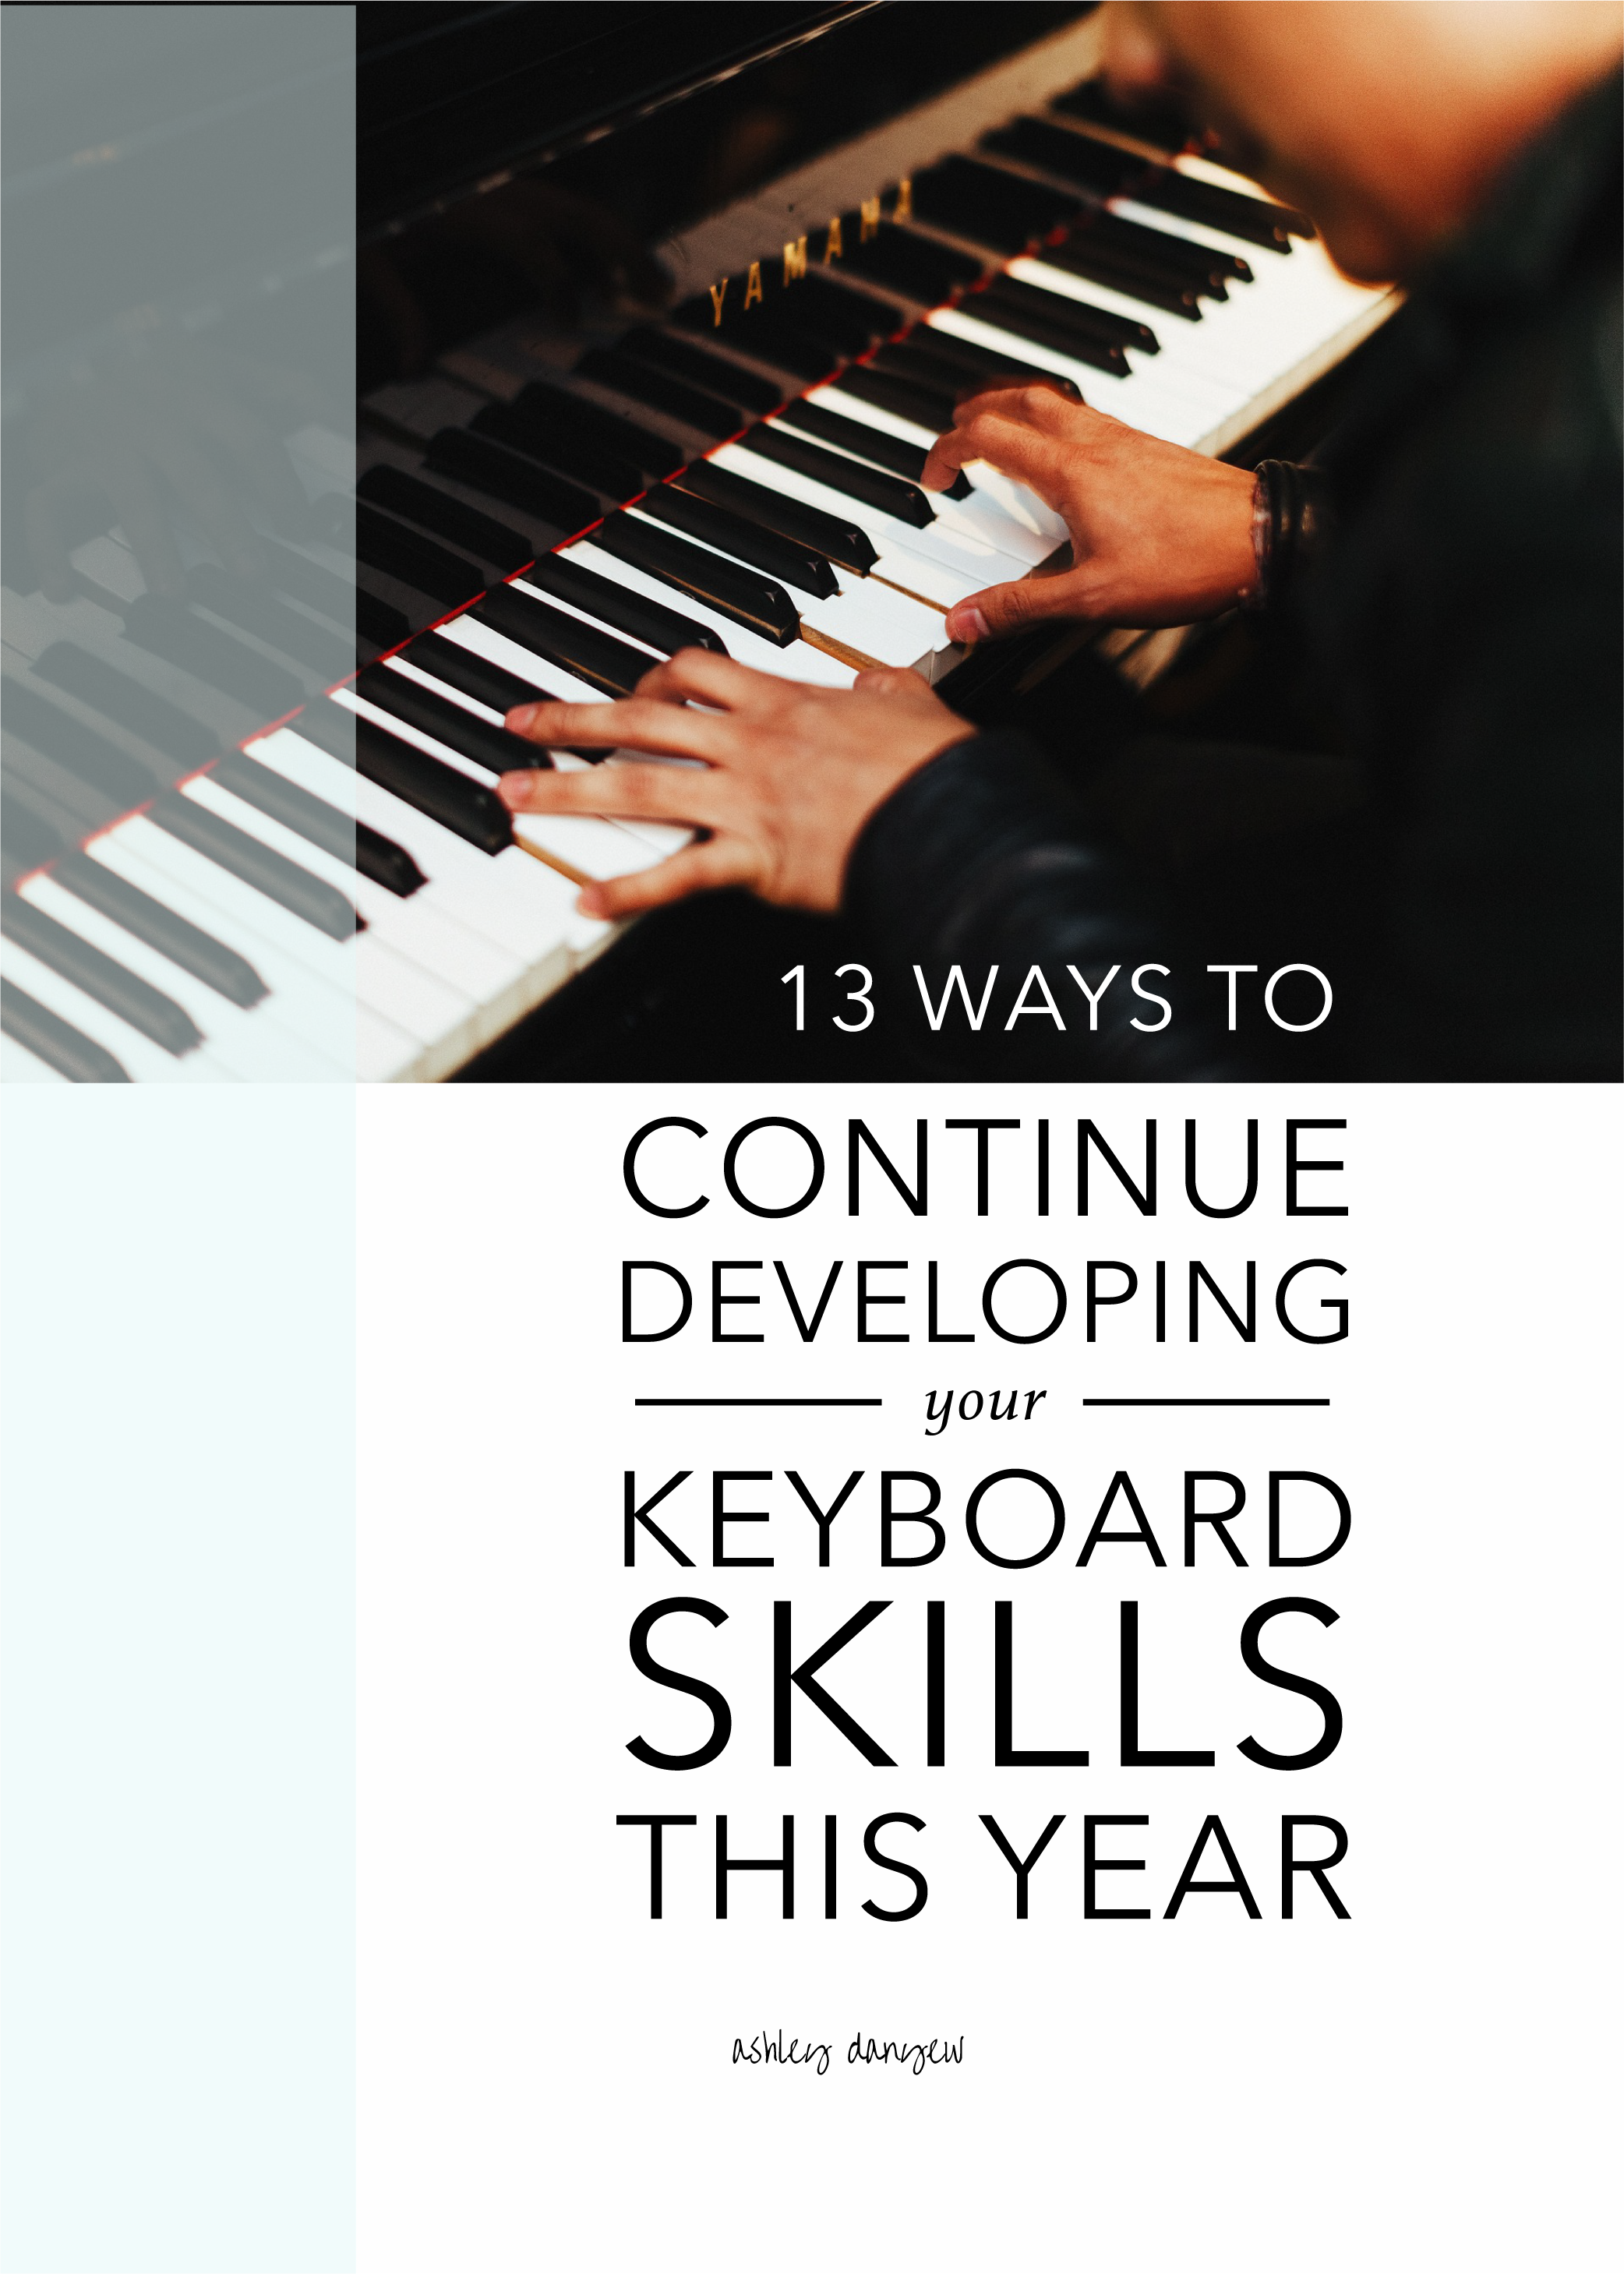 13 Ways to Continue Developing Your Keyboard Skills This Year-42.png